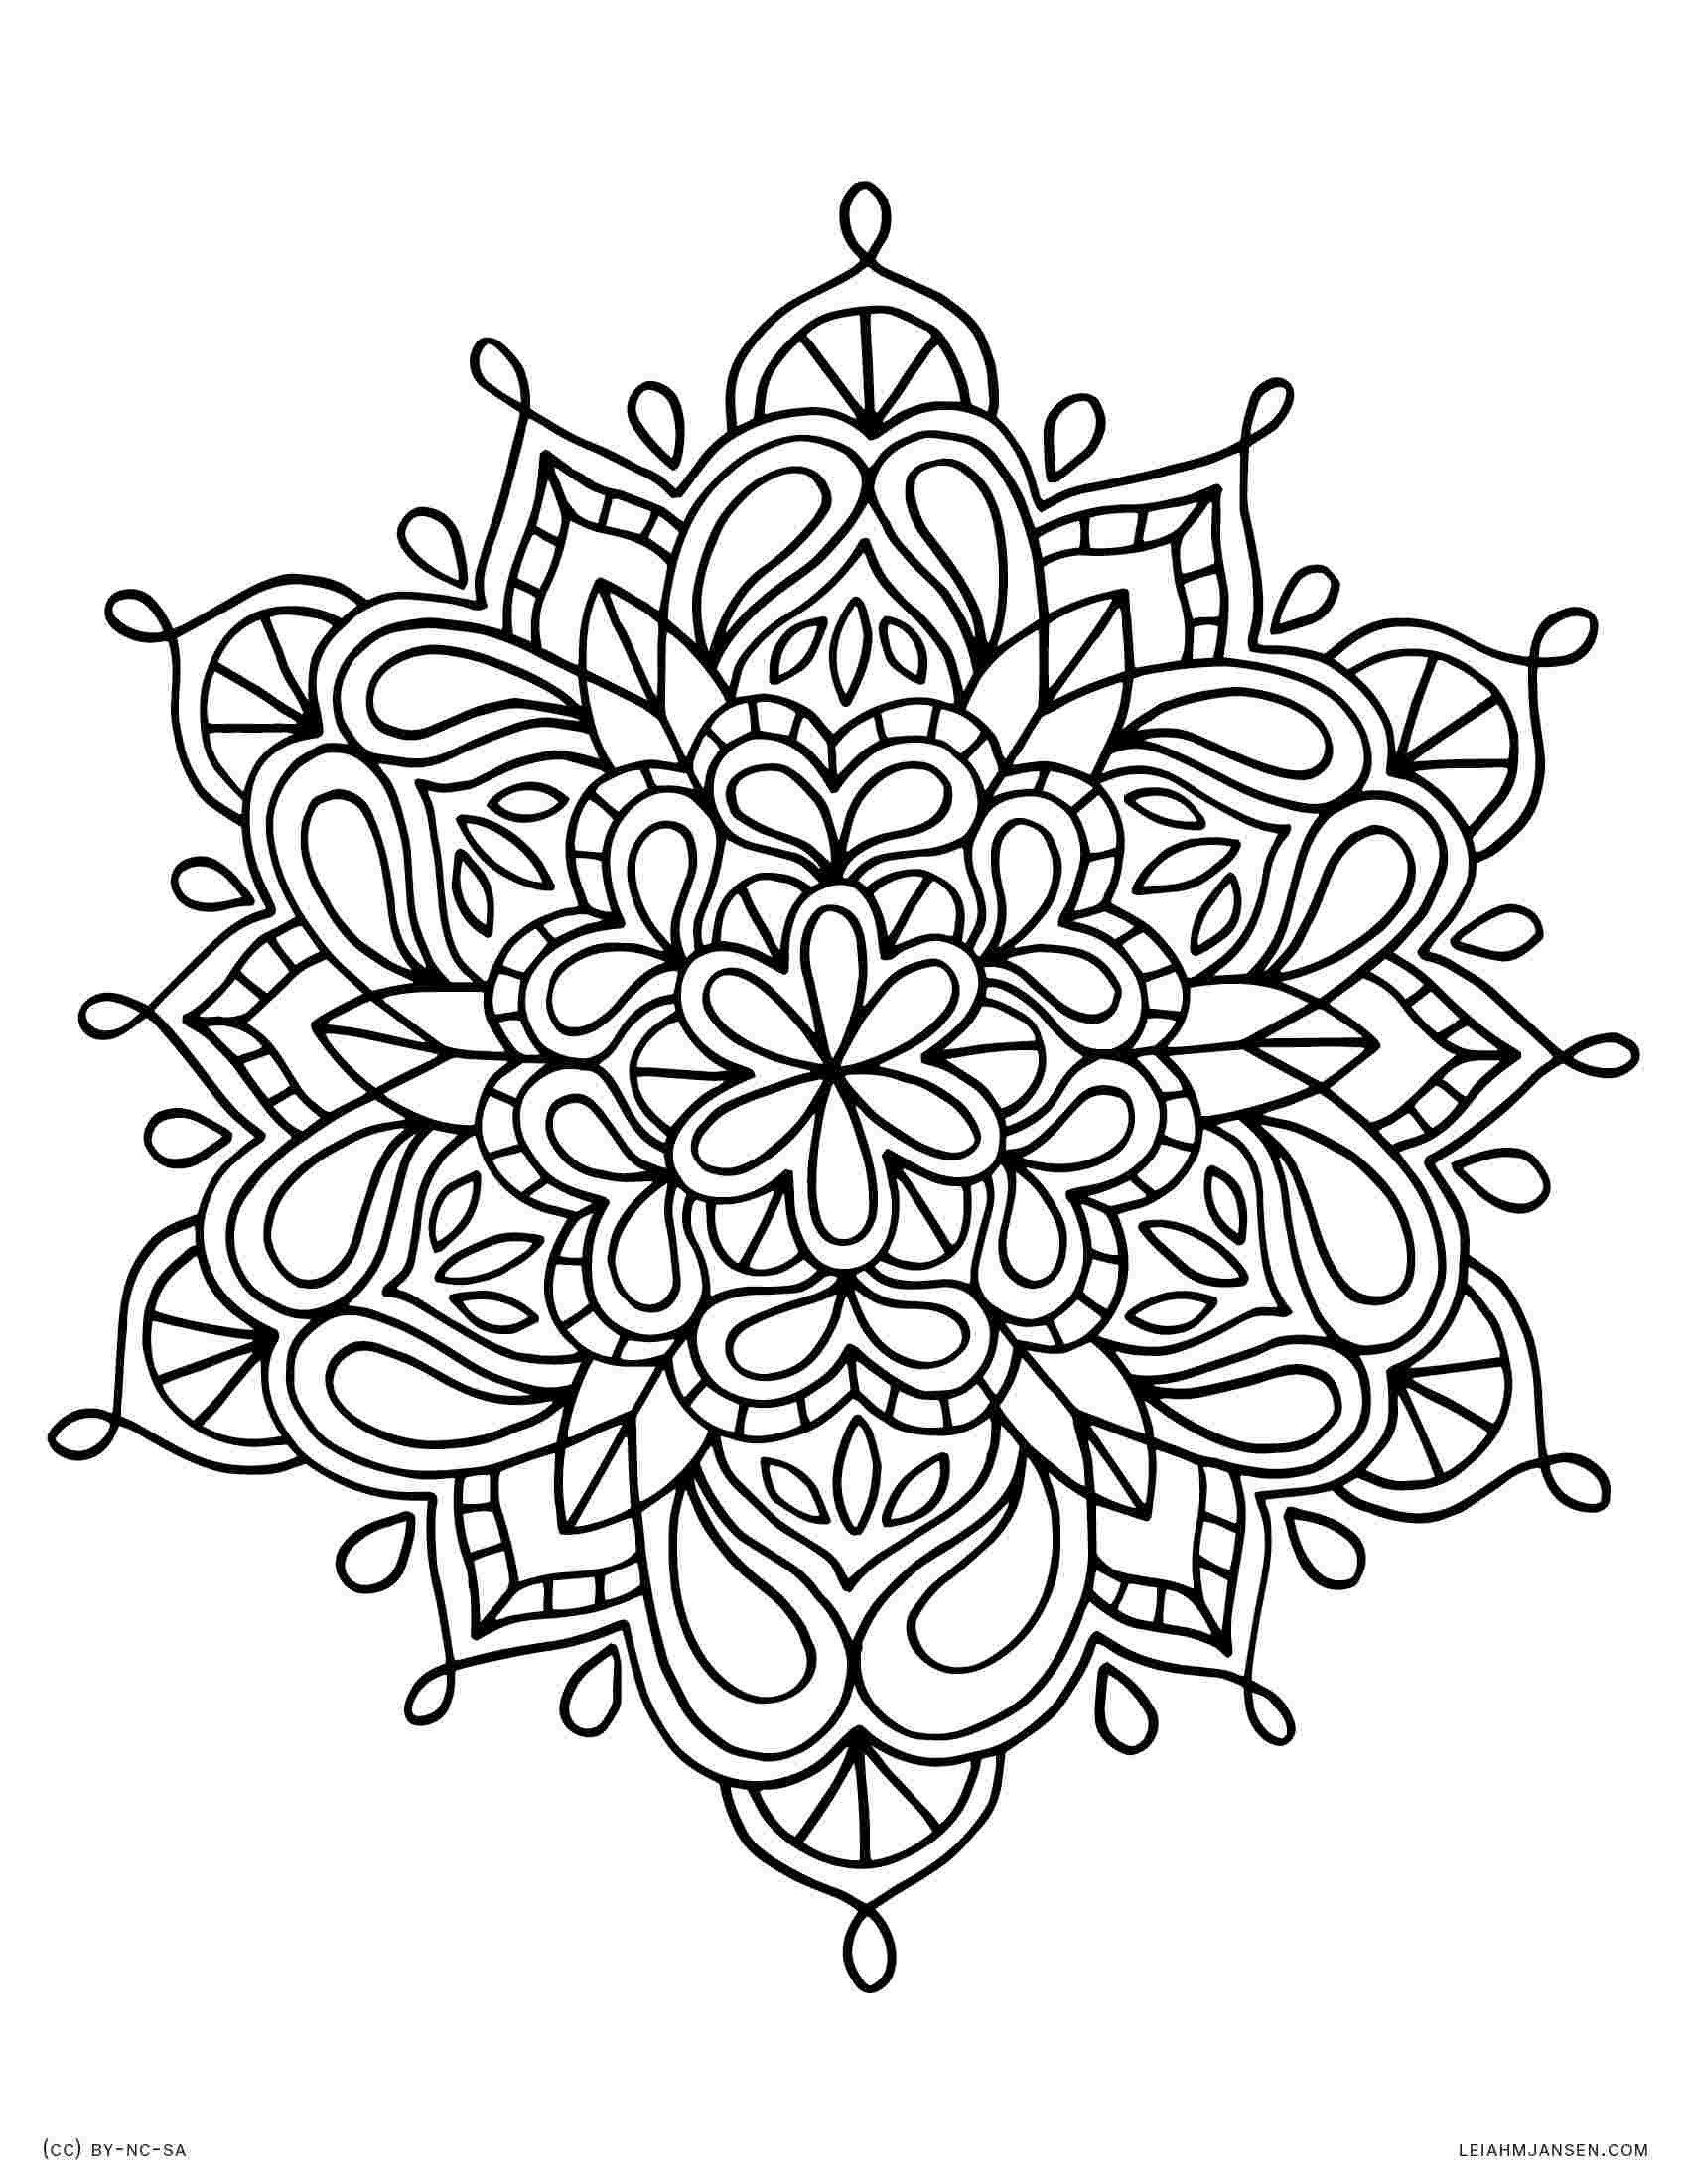 Easy Flower Mandala Coloring Pages Coloring Page Flower Mandala Printable Coloring Page B Mandala Coloring Pages Abstract Coloring Pages Mandala Coloring Books